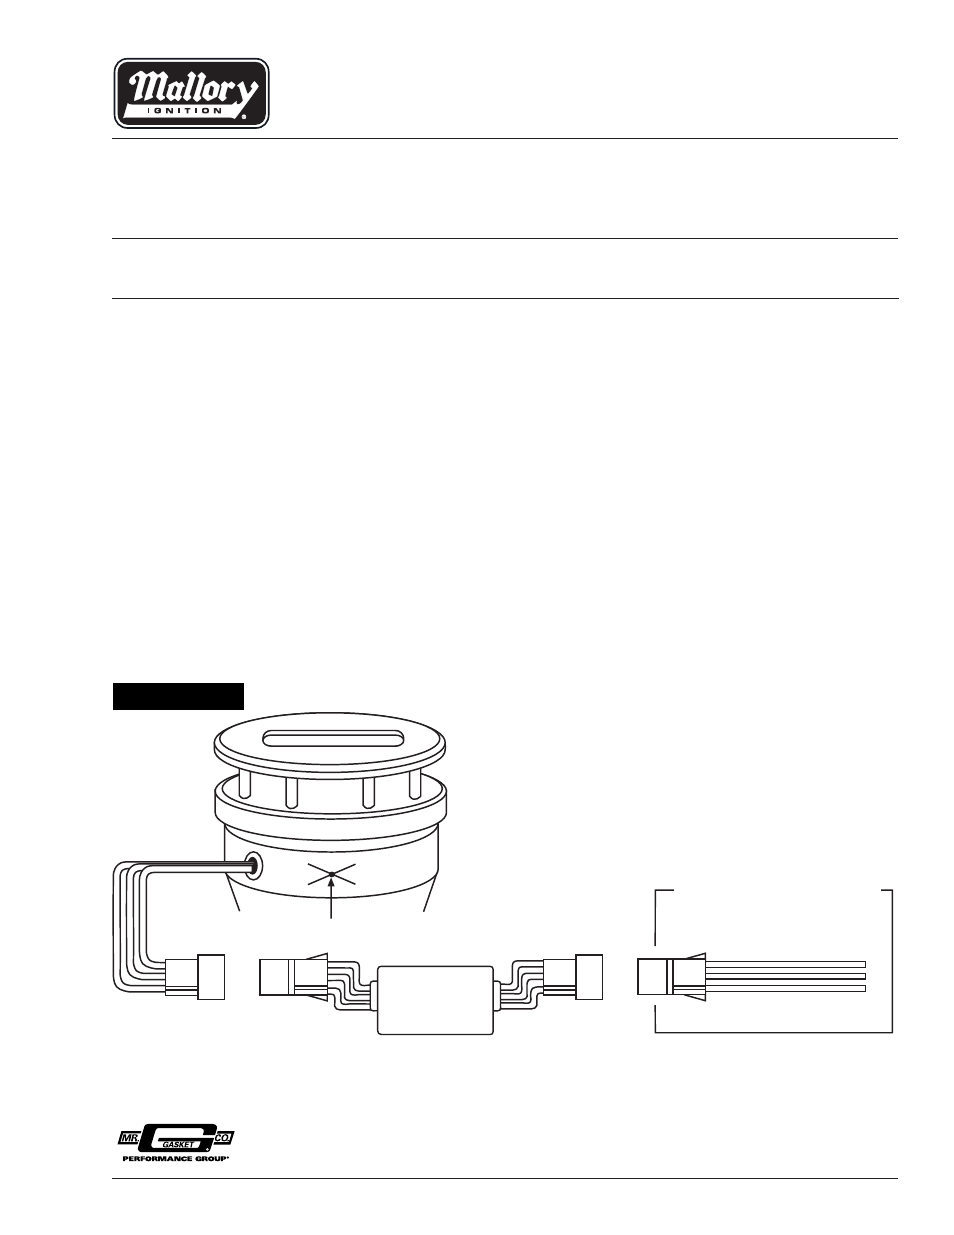 Mallory 685 Wiring Diagram Electrical Diagrams Hyfire For Cj7 28 Mag O Manual Nitrous Horn Activation